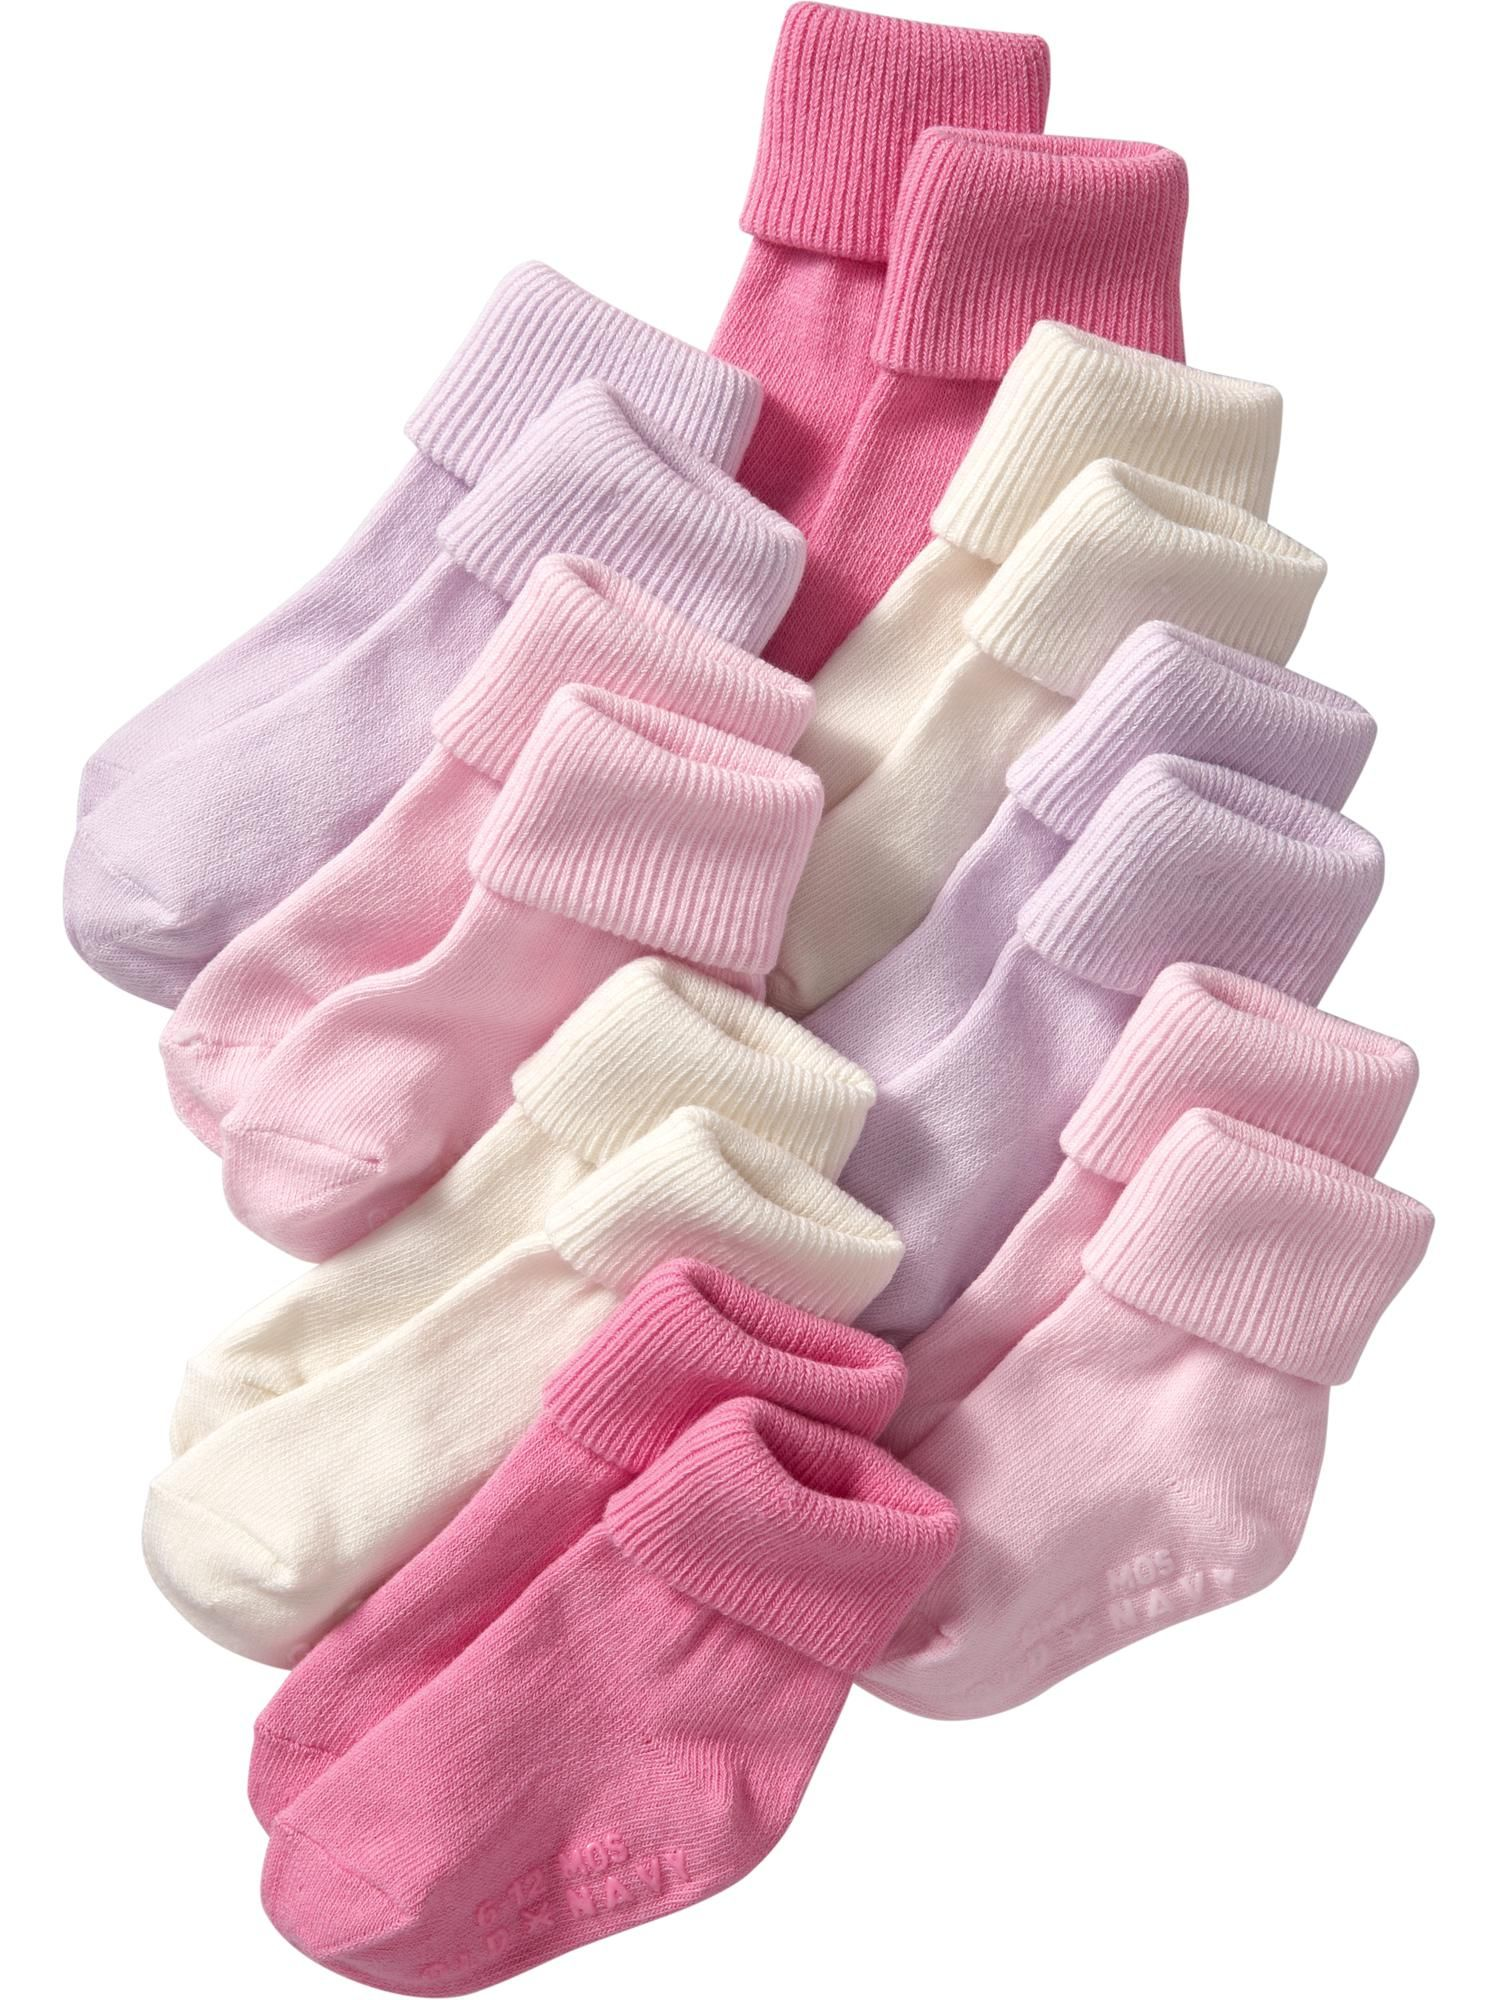 Triple roll socks from Old Navy Baby Pinterest